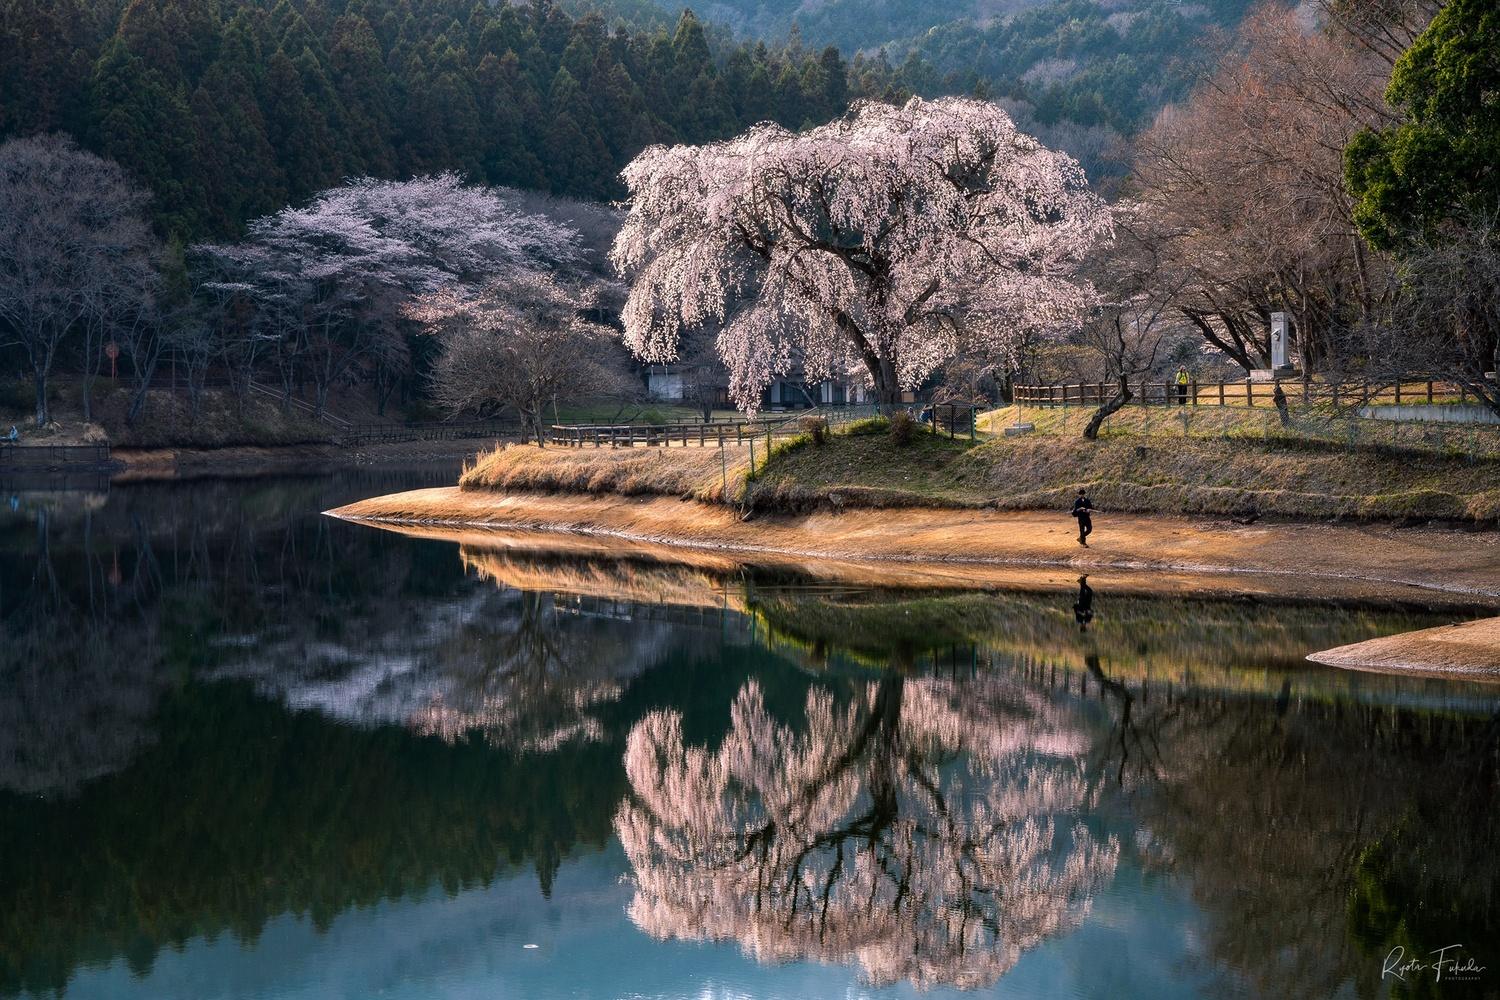 In the mirror by Ryota Fukuda